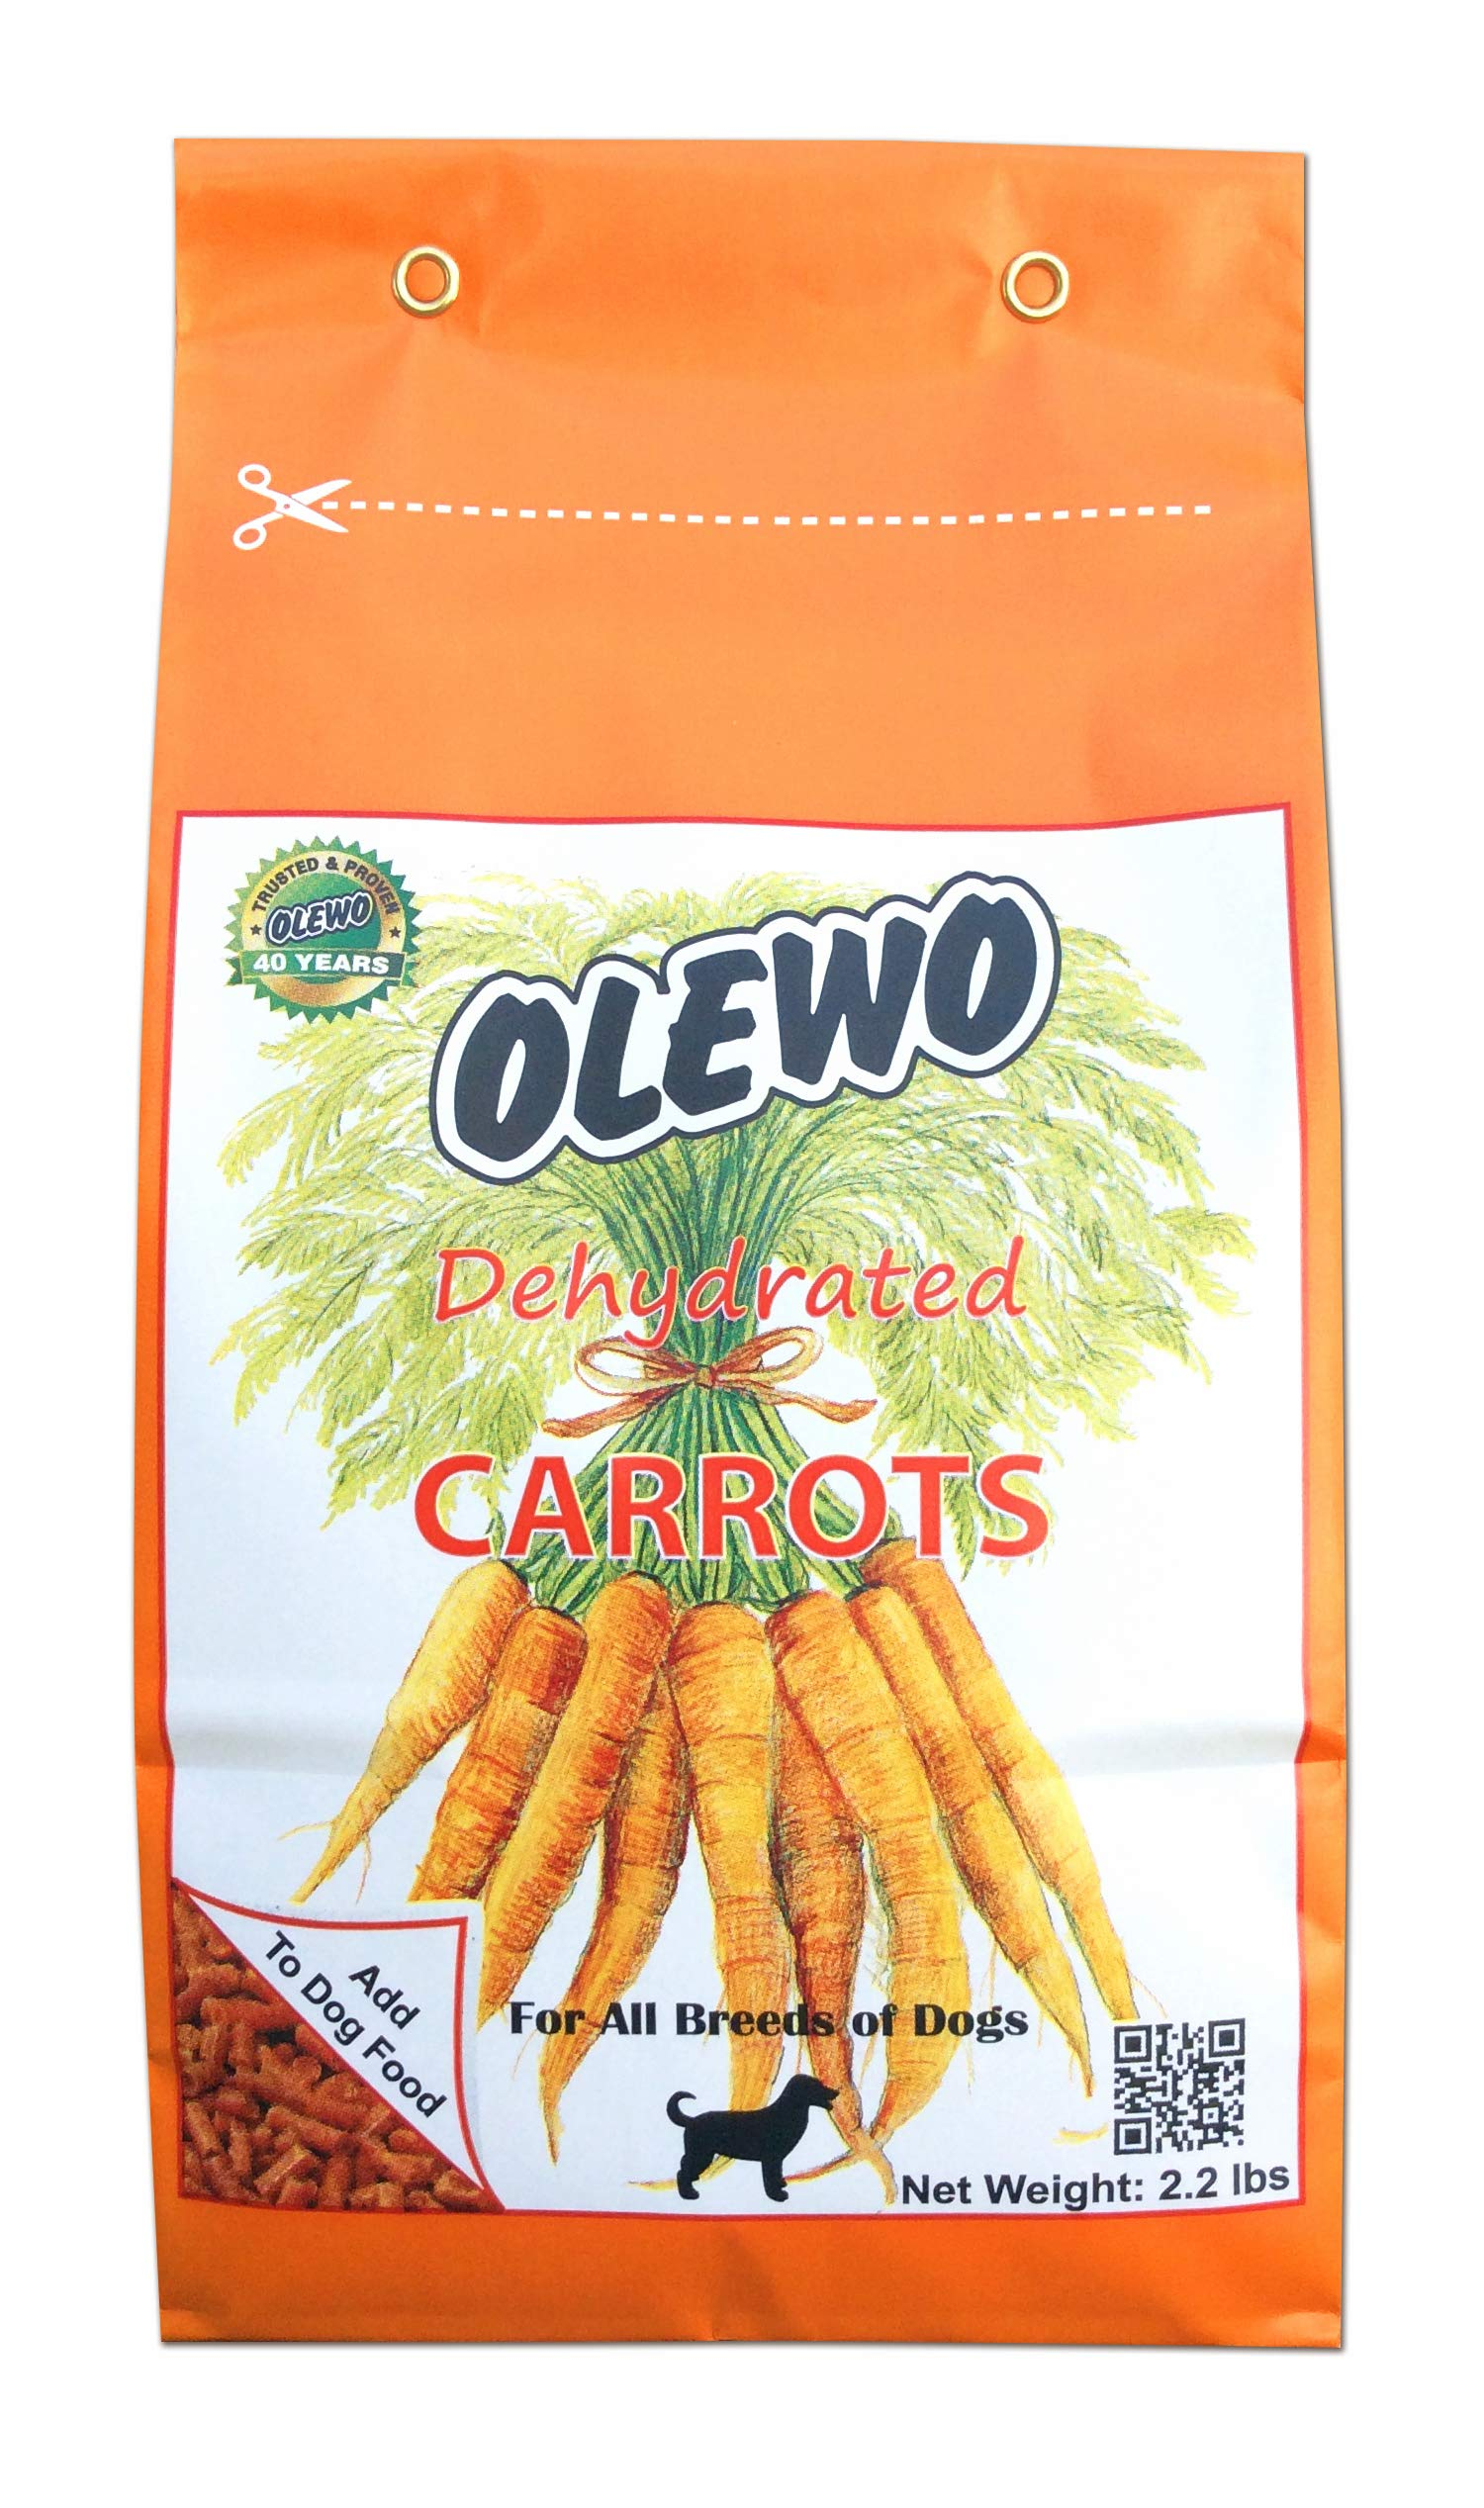 Olewo Dehydrated Carrots Dog Food Supplement, 2.2-Pound by Olewo